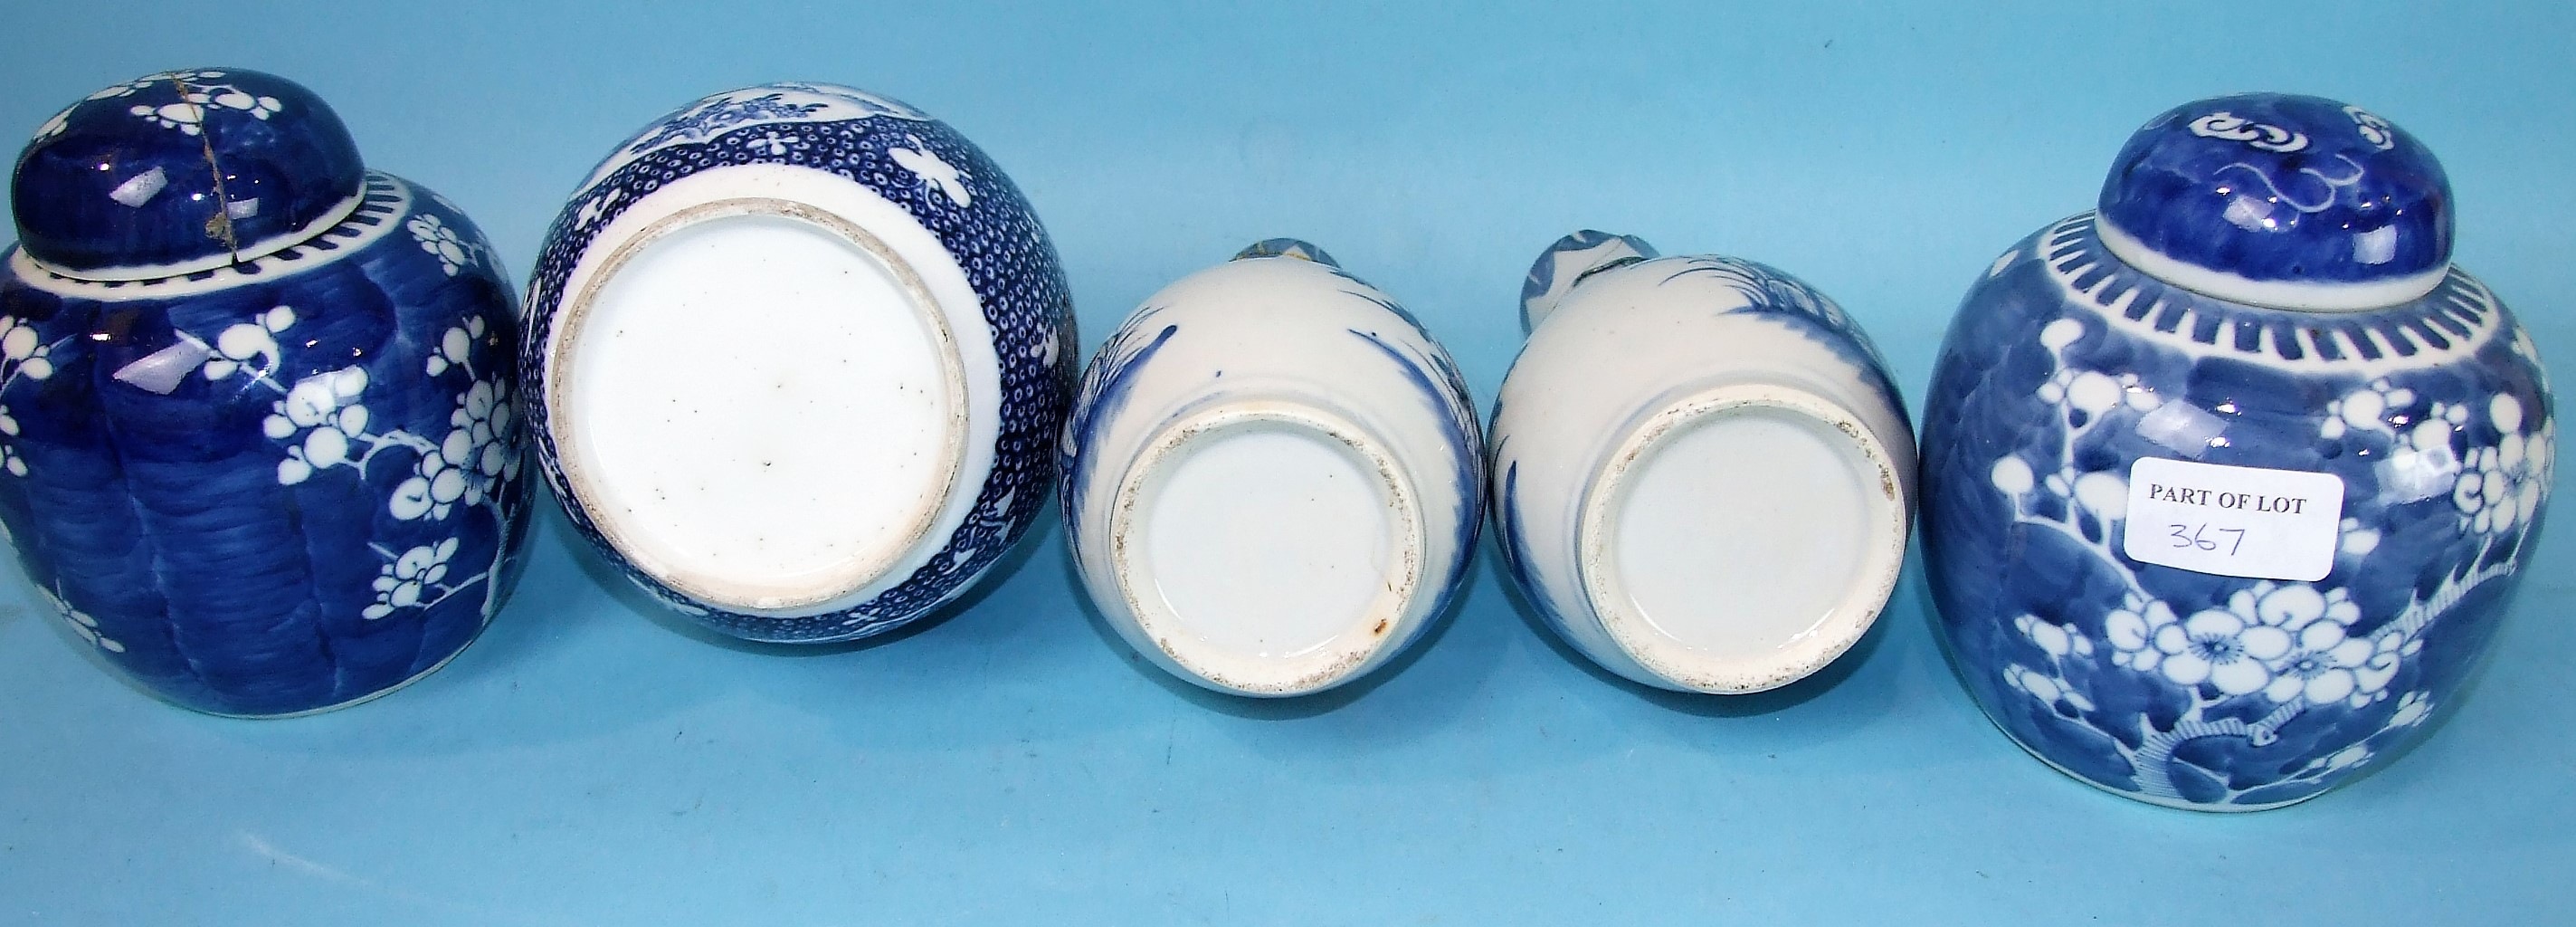 Lot 367 - An 18th century Chinese blue and white bottle vase, a pair of vases with applied dragon handles